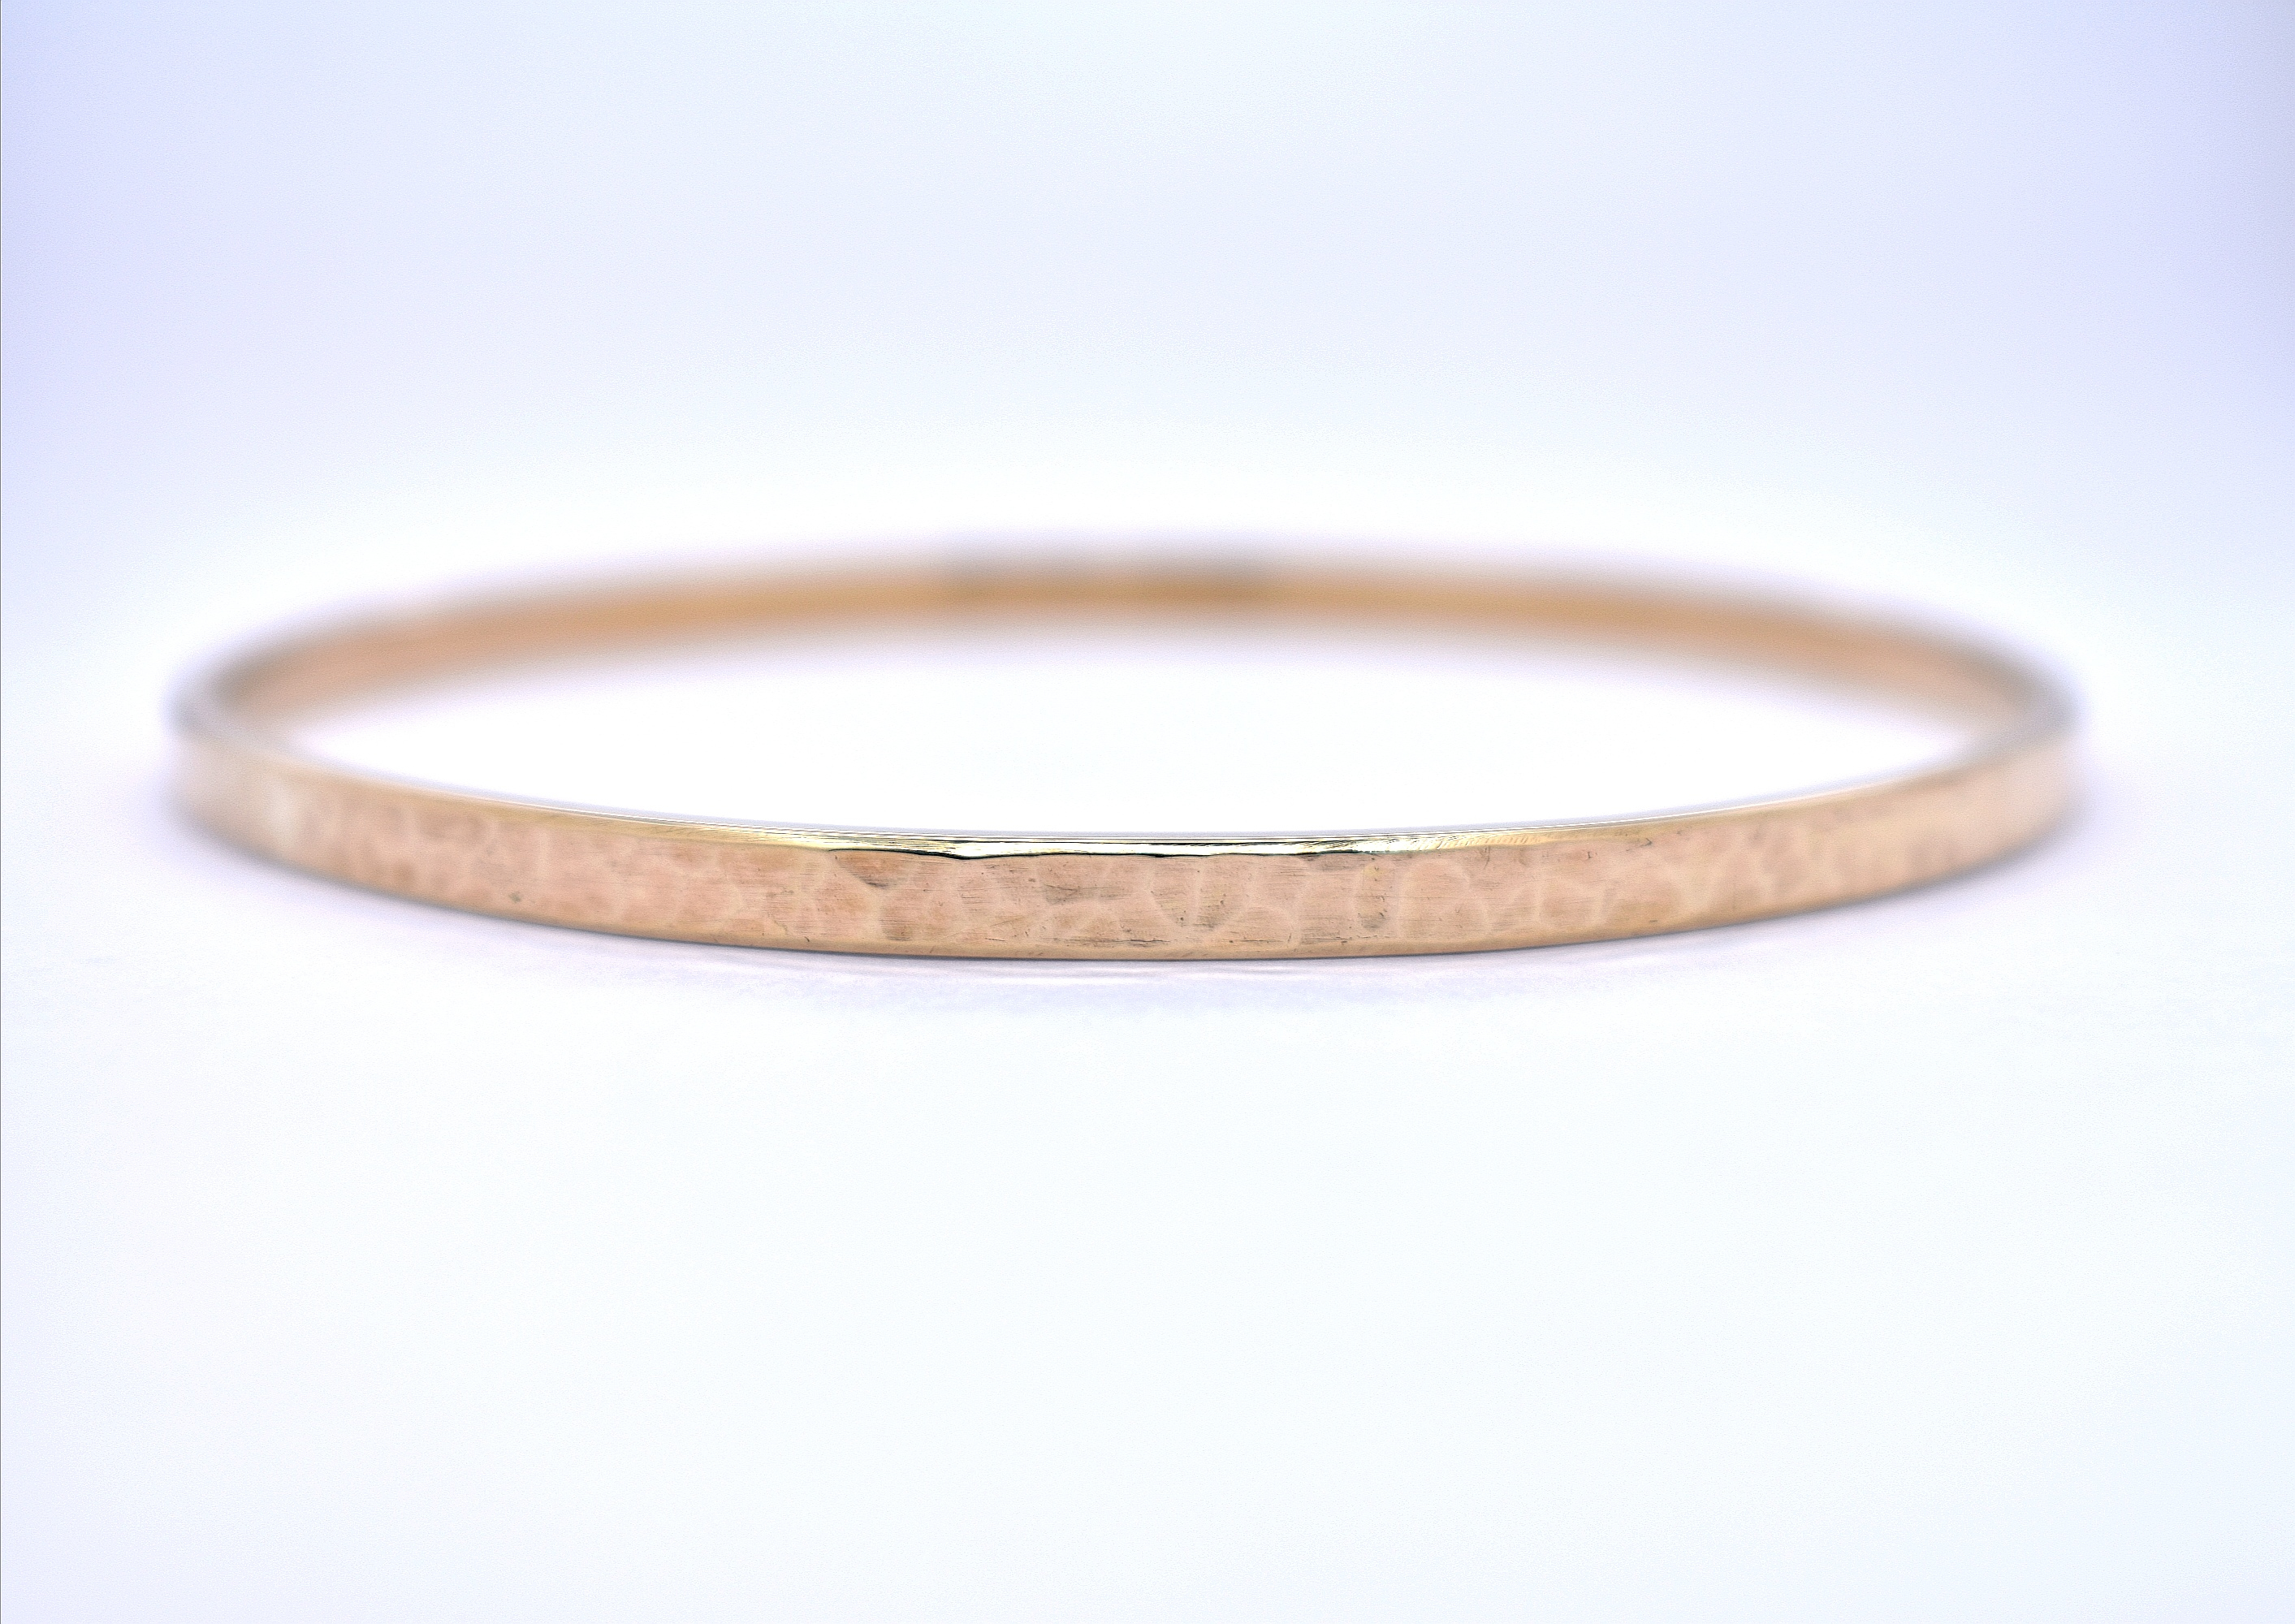 9ct yellow gold hammered bangle in Ipswich, Suffolk